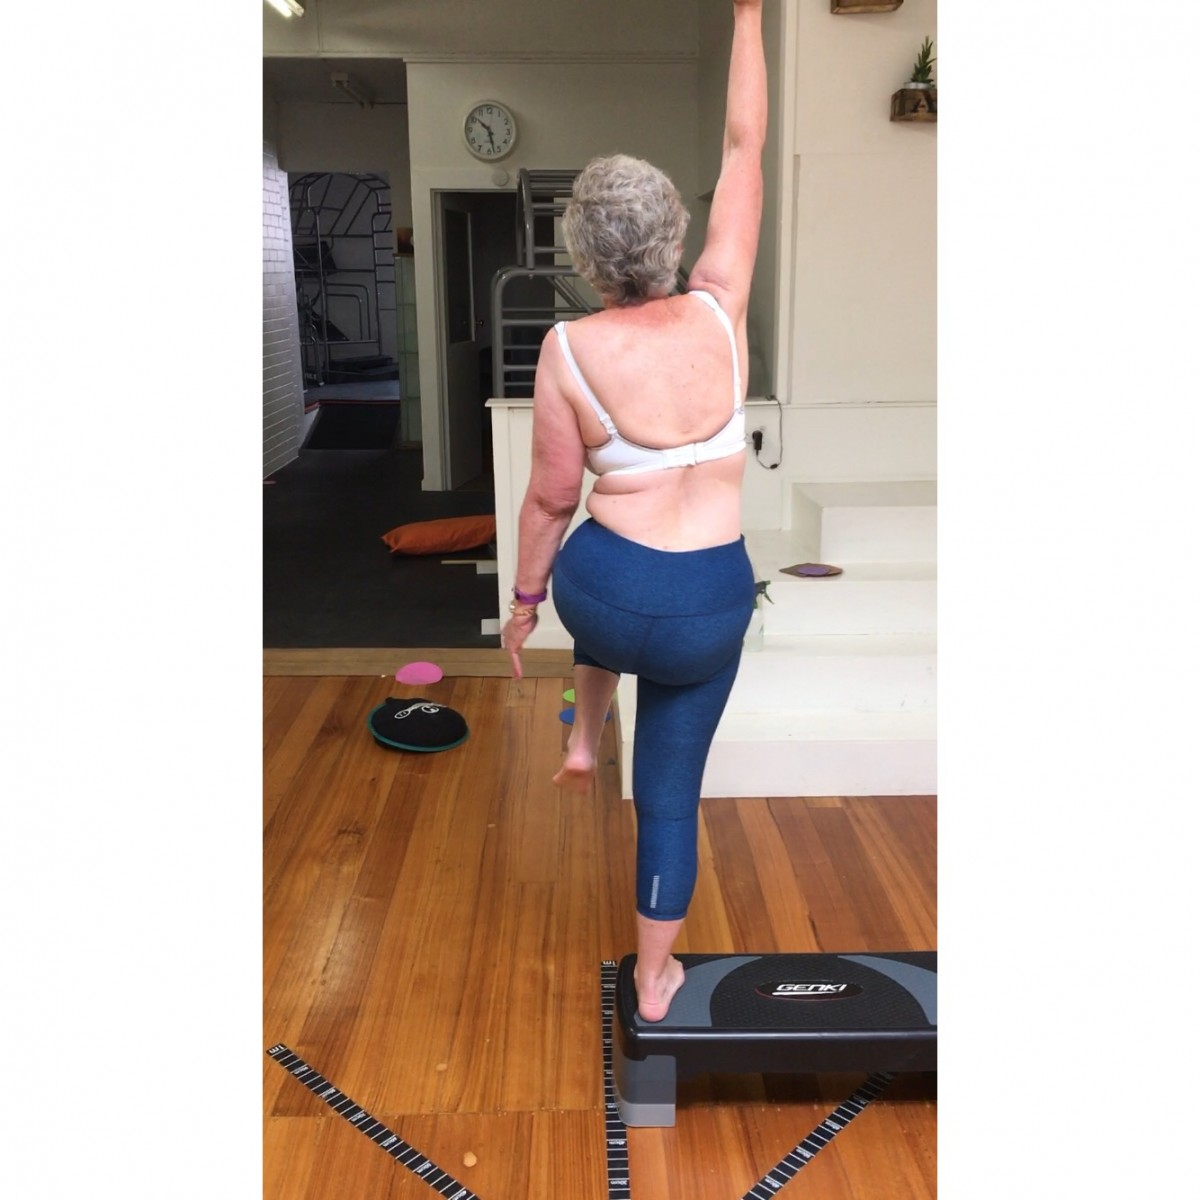 Tweaking Load for Success in Back Pain